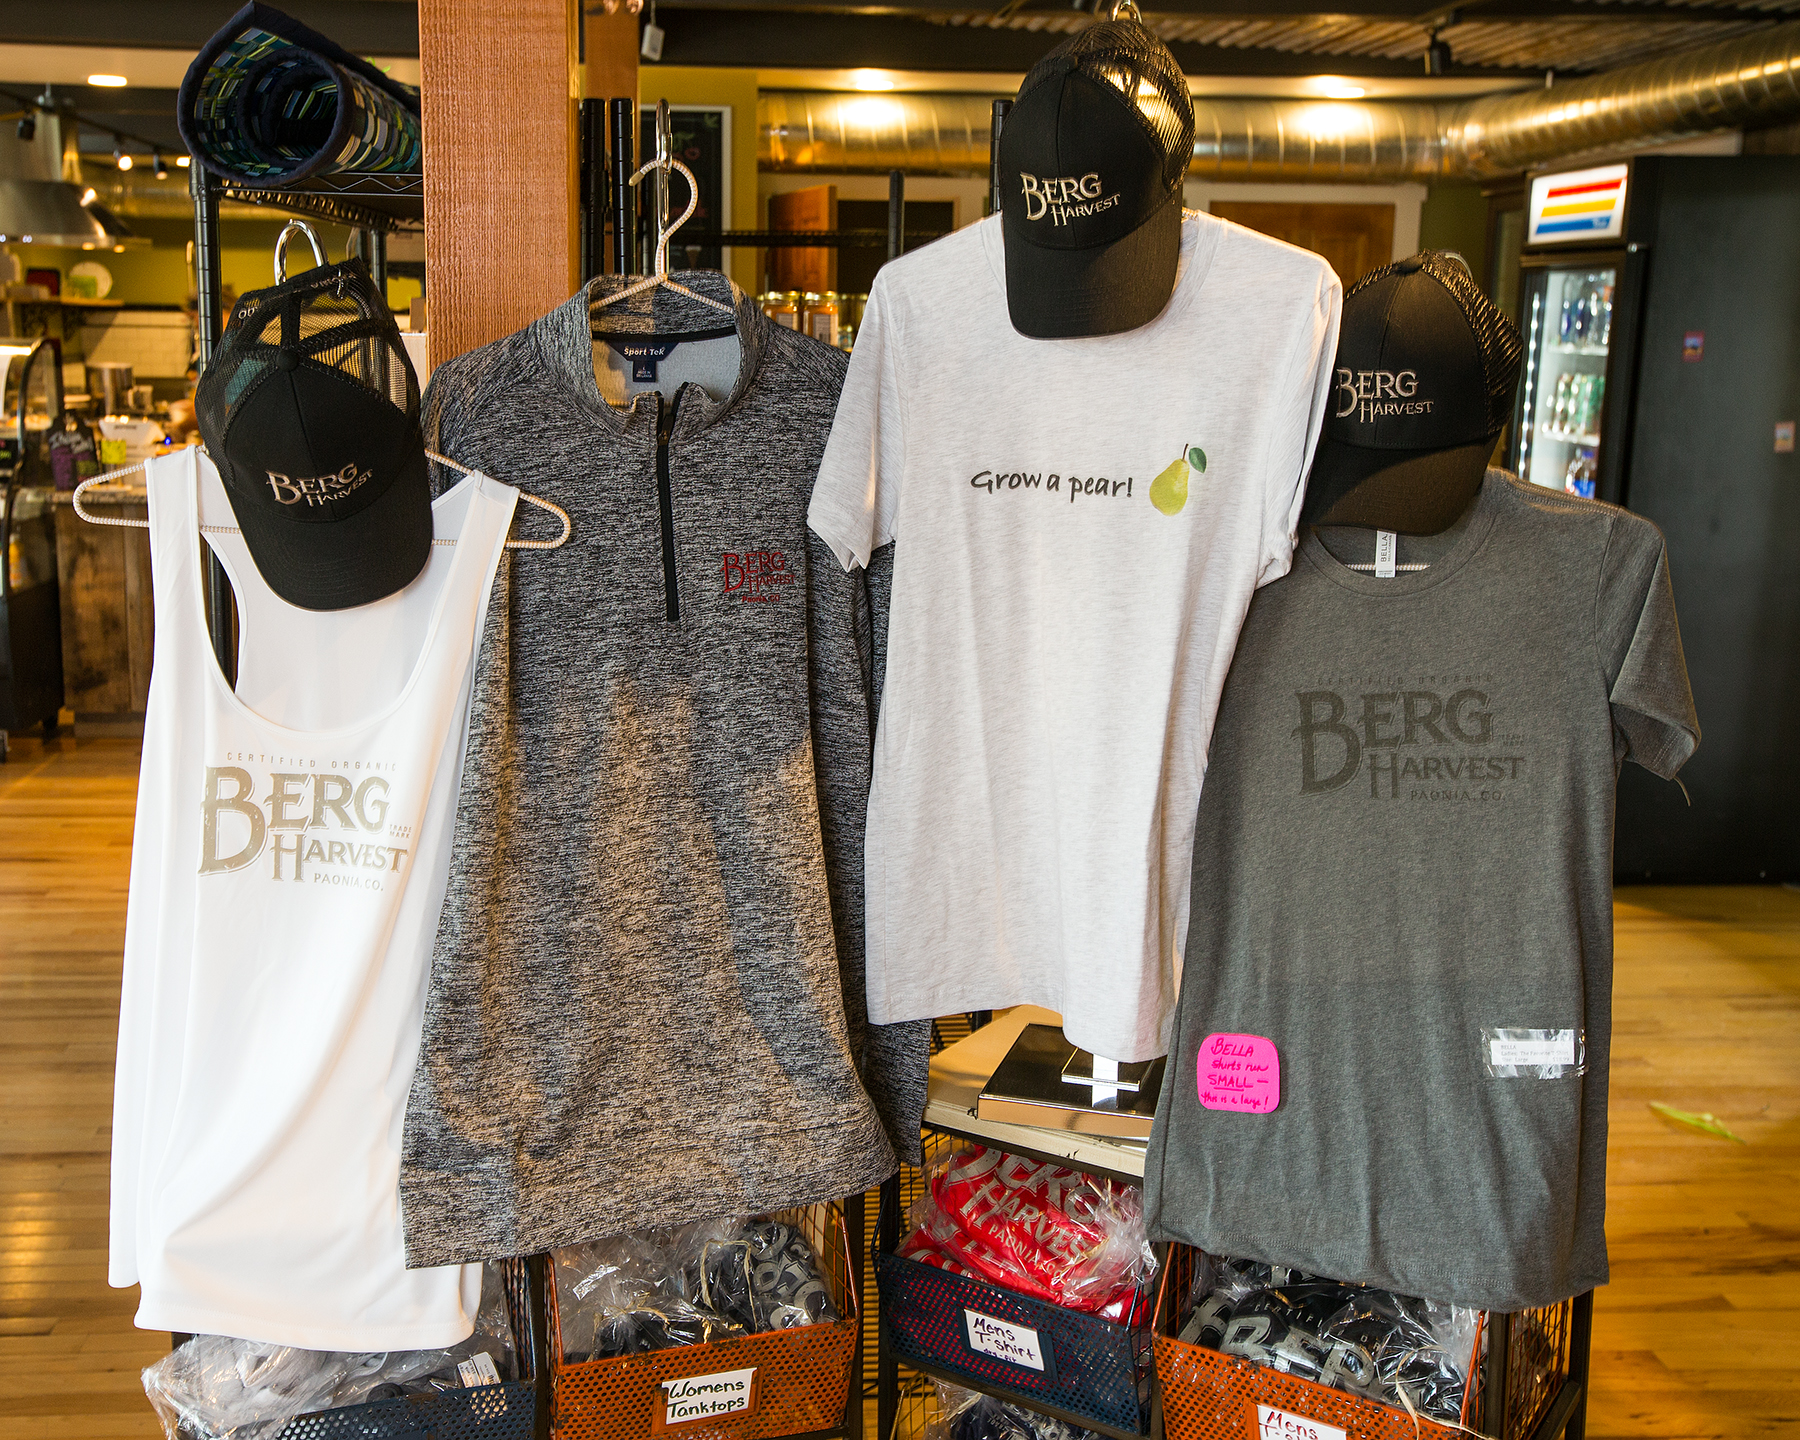 Check out our selection of Berg Harvest apparel